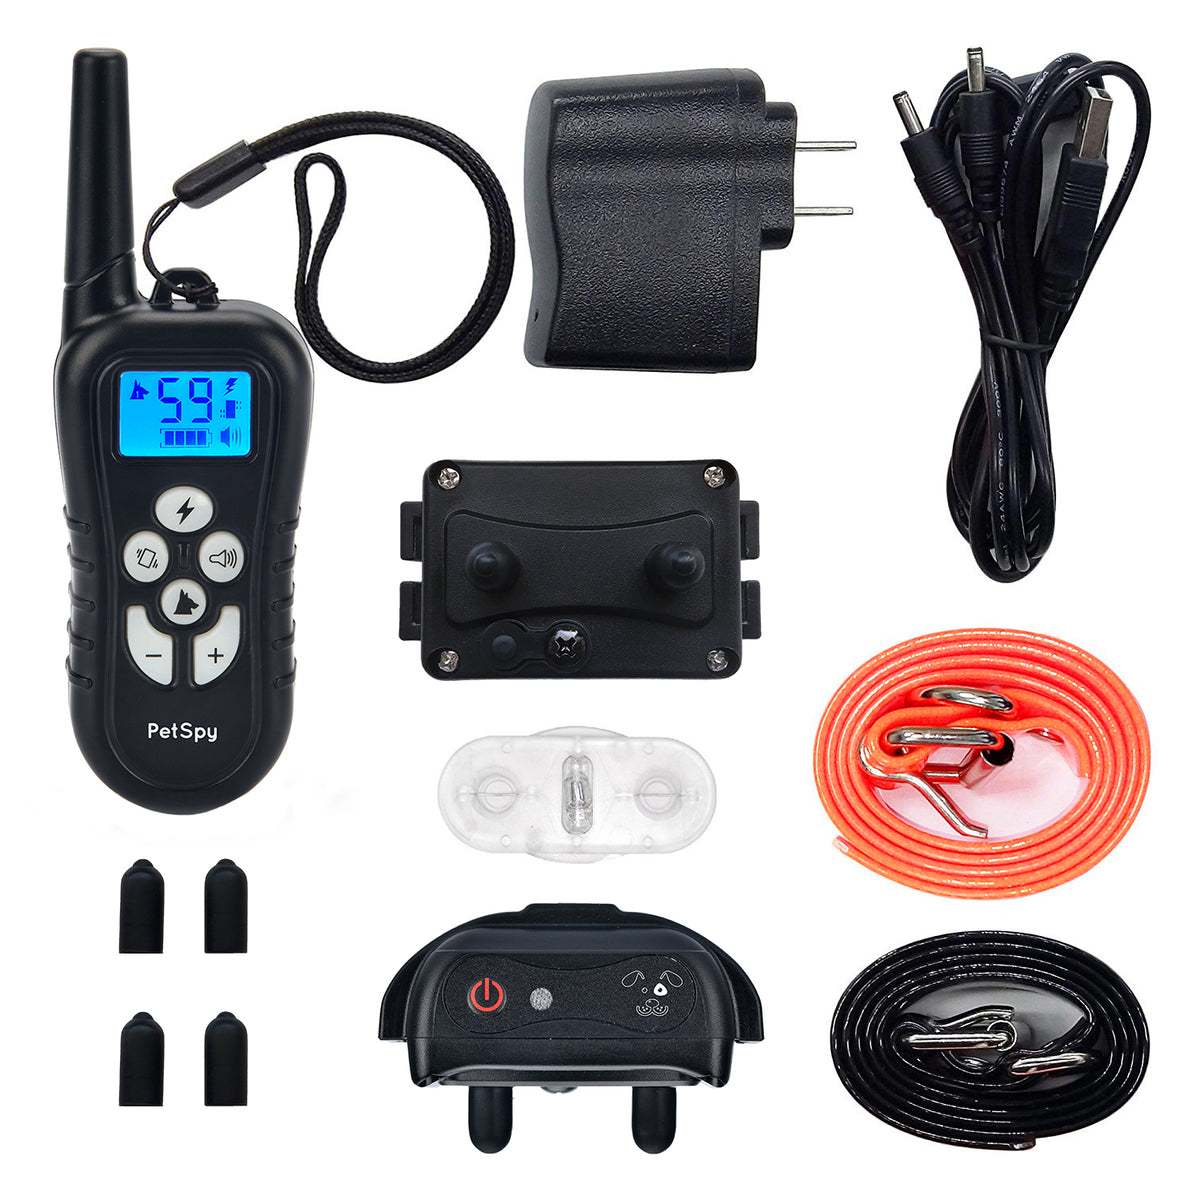 PetSpy M919-1 package contents: 2 receivers, remote, 2 collars, charger, set of prongs, test light